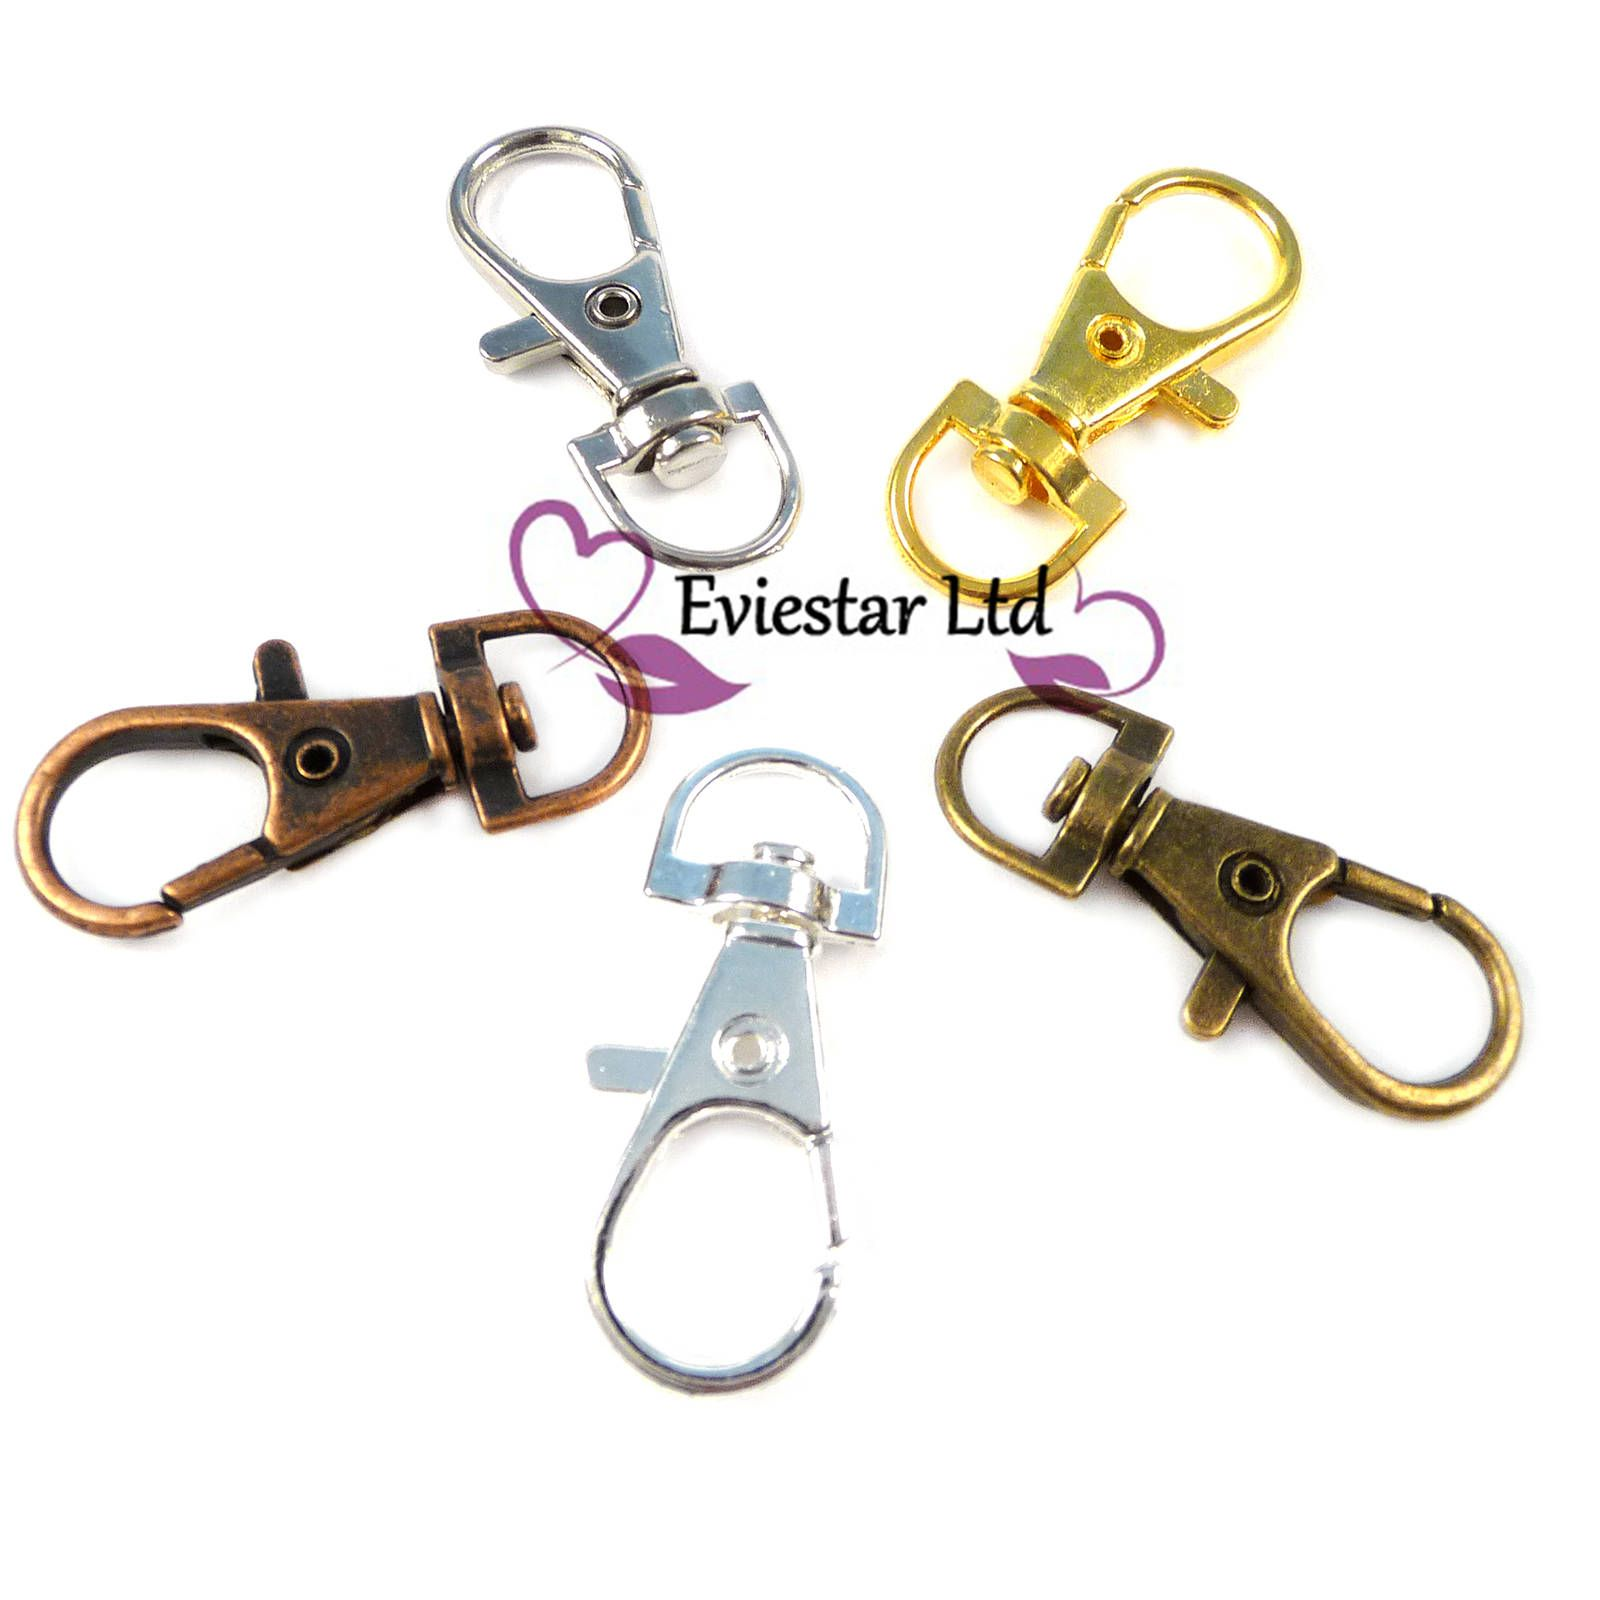 Silver Key Ring Swivel Trigger Clips Snap Hook Lobster Clasps Rings DIY Supply